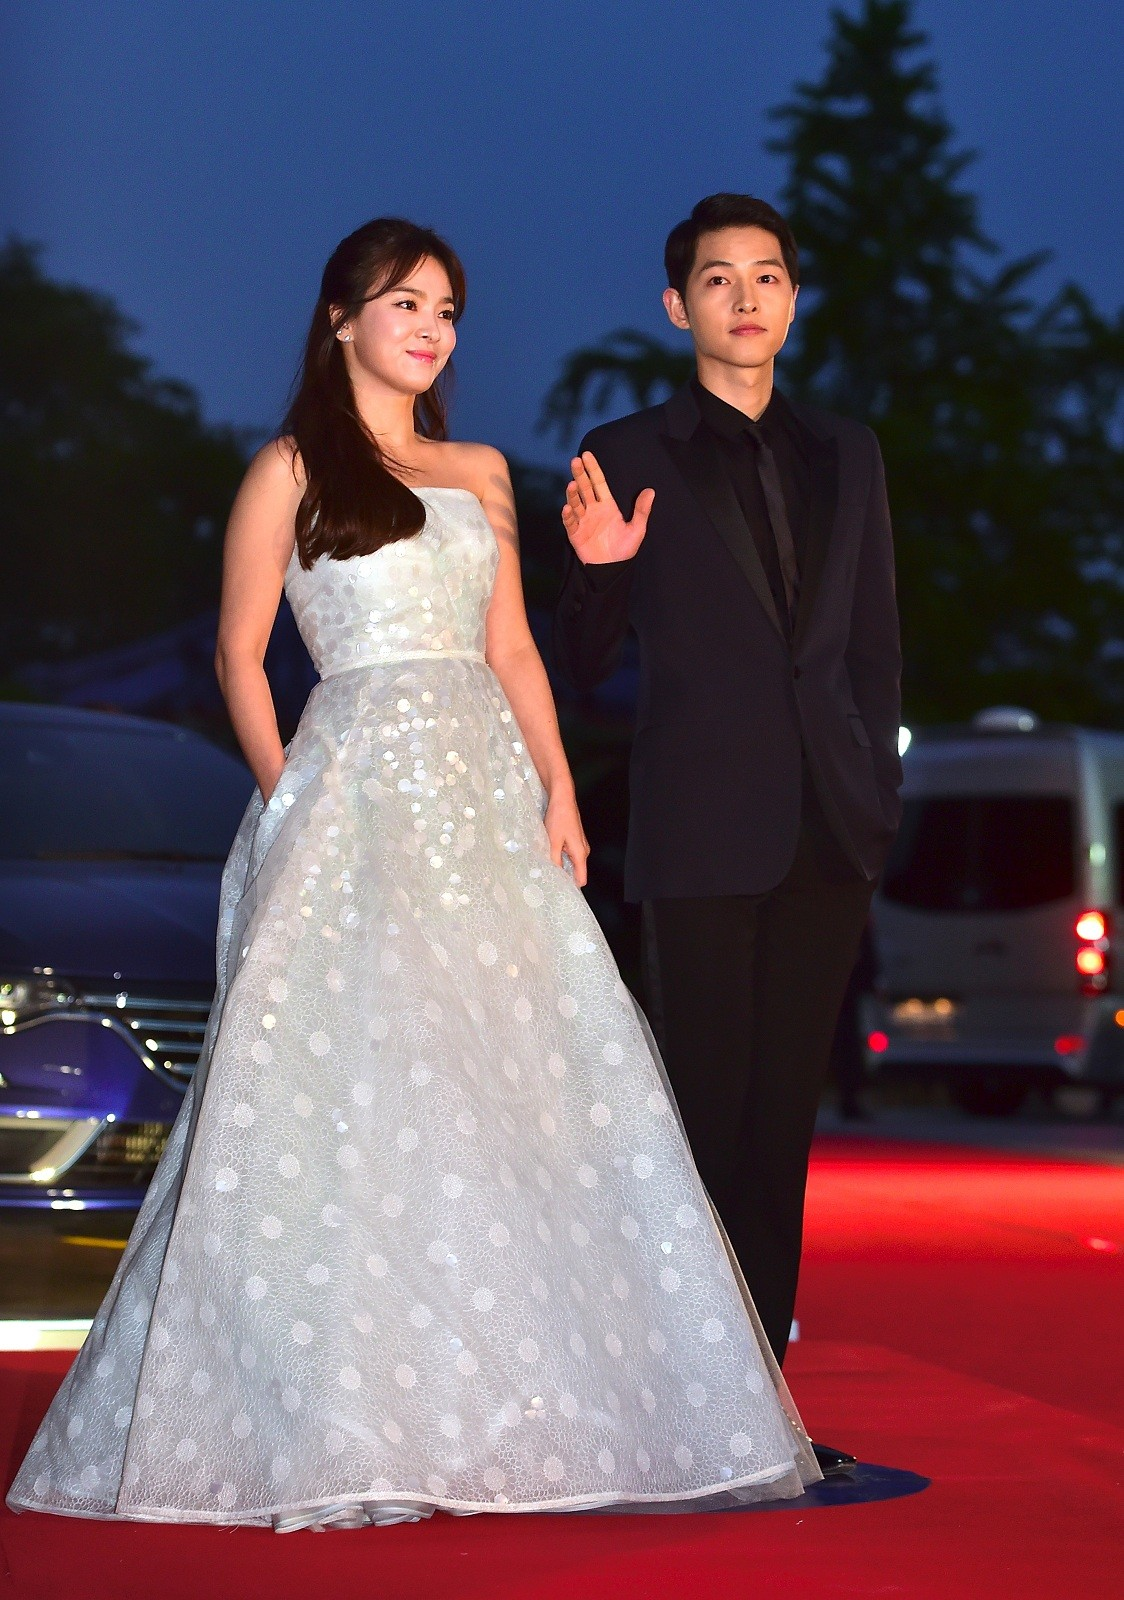 The two South Korean stars who played lovers in a TV drama that took Asia by storm last year tied the knot in real life on Tuesday in a highly-anticipated wedding.